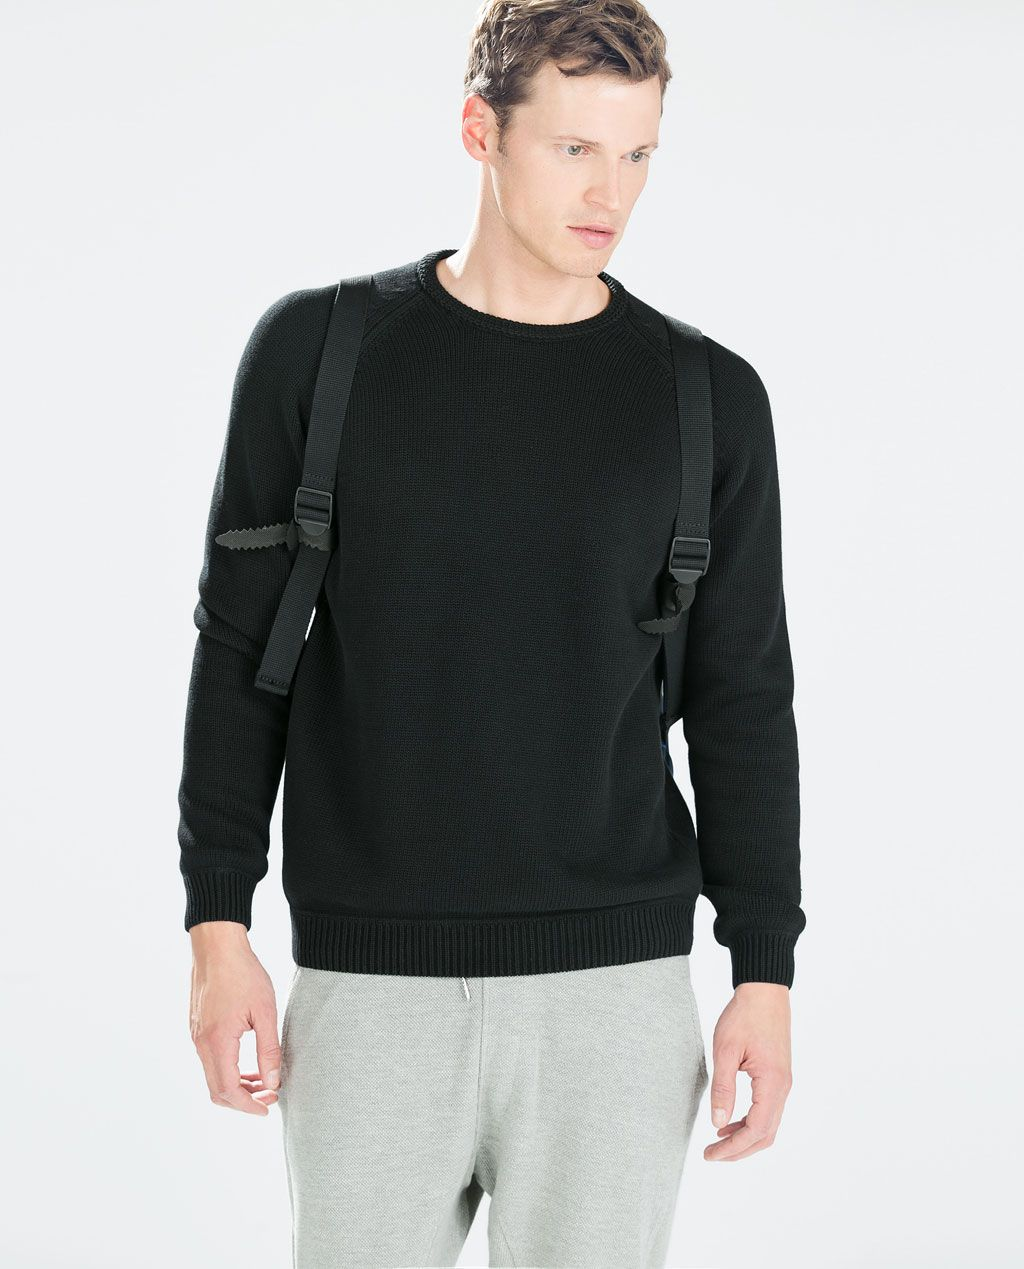 ZARA - MAN - ROUND NECK SWEATER